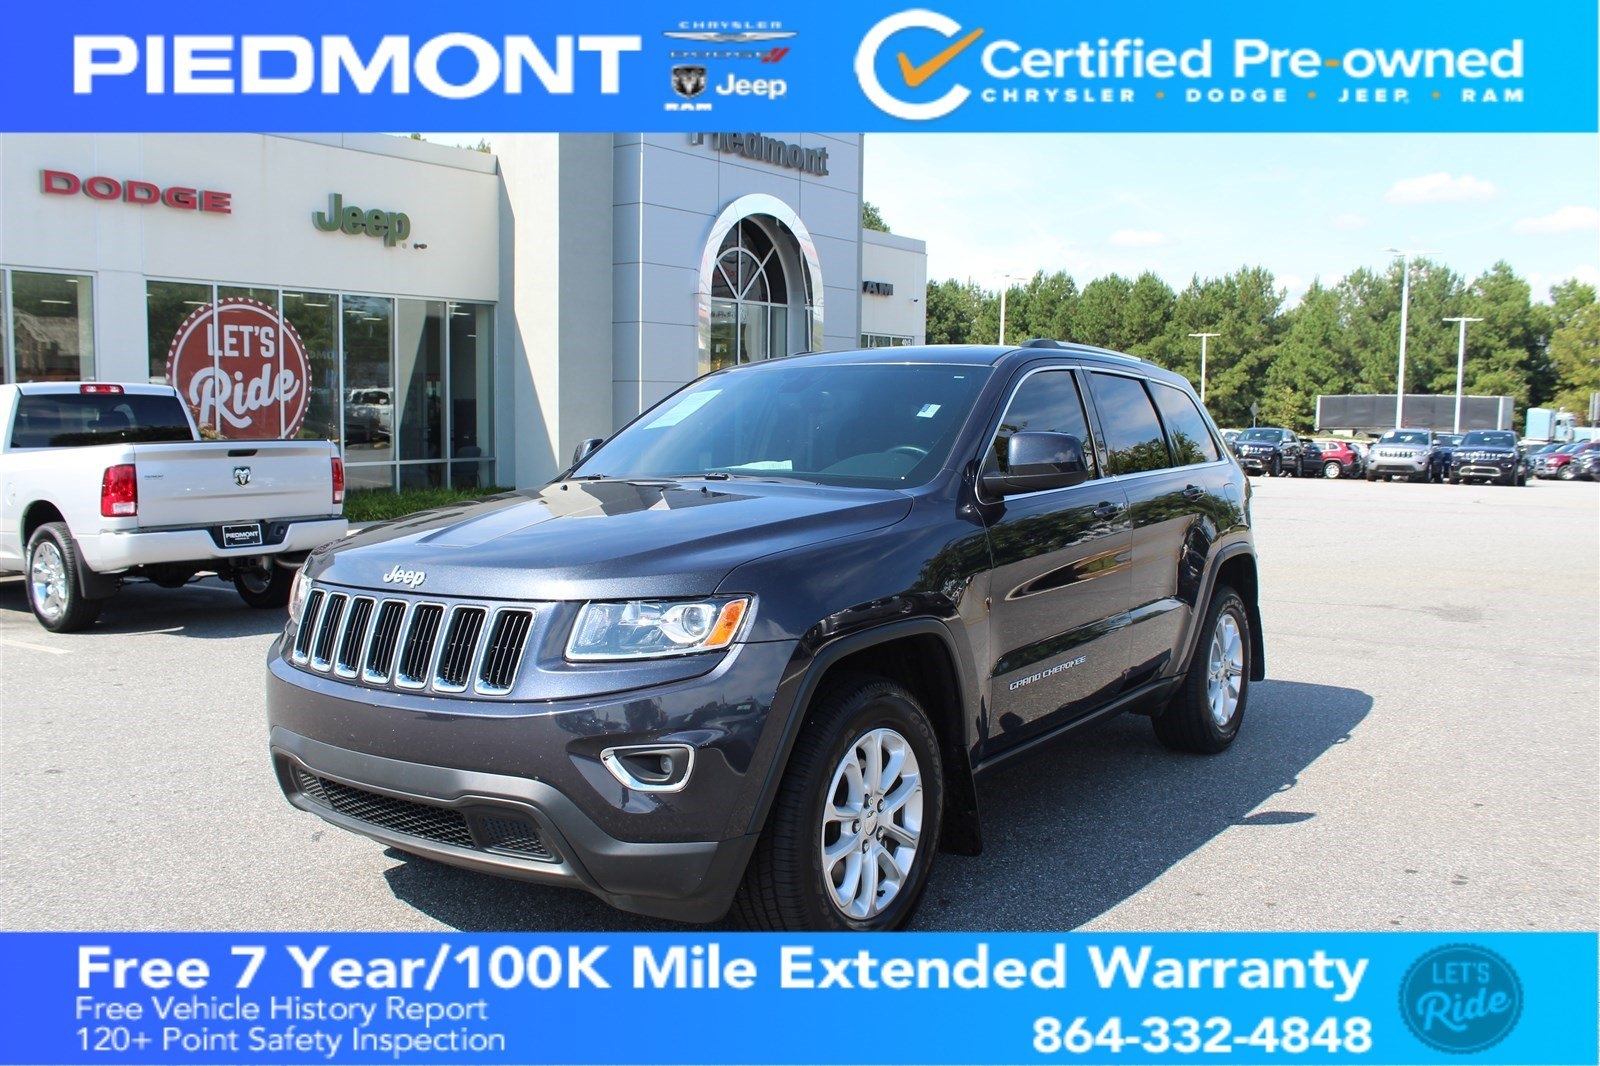 Exceptional Certified Pre Owned 2016 Jeep Grand Cherokee RWD 4dr Laredo